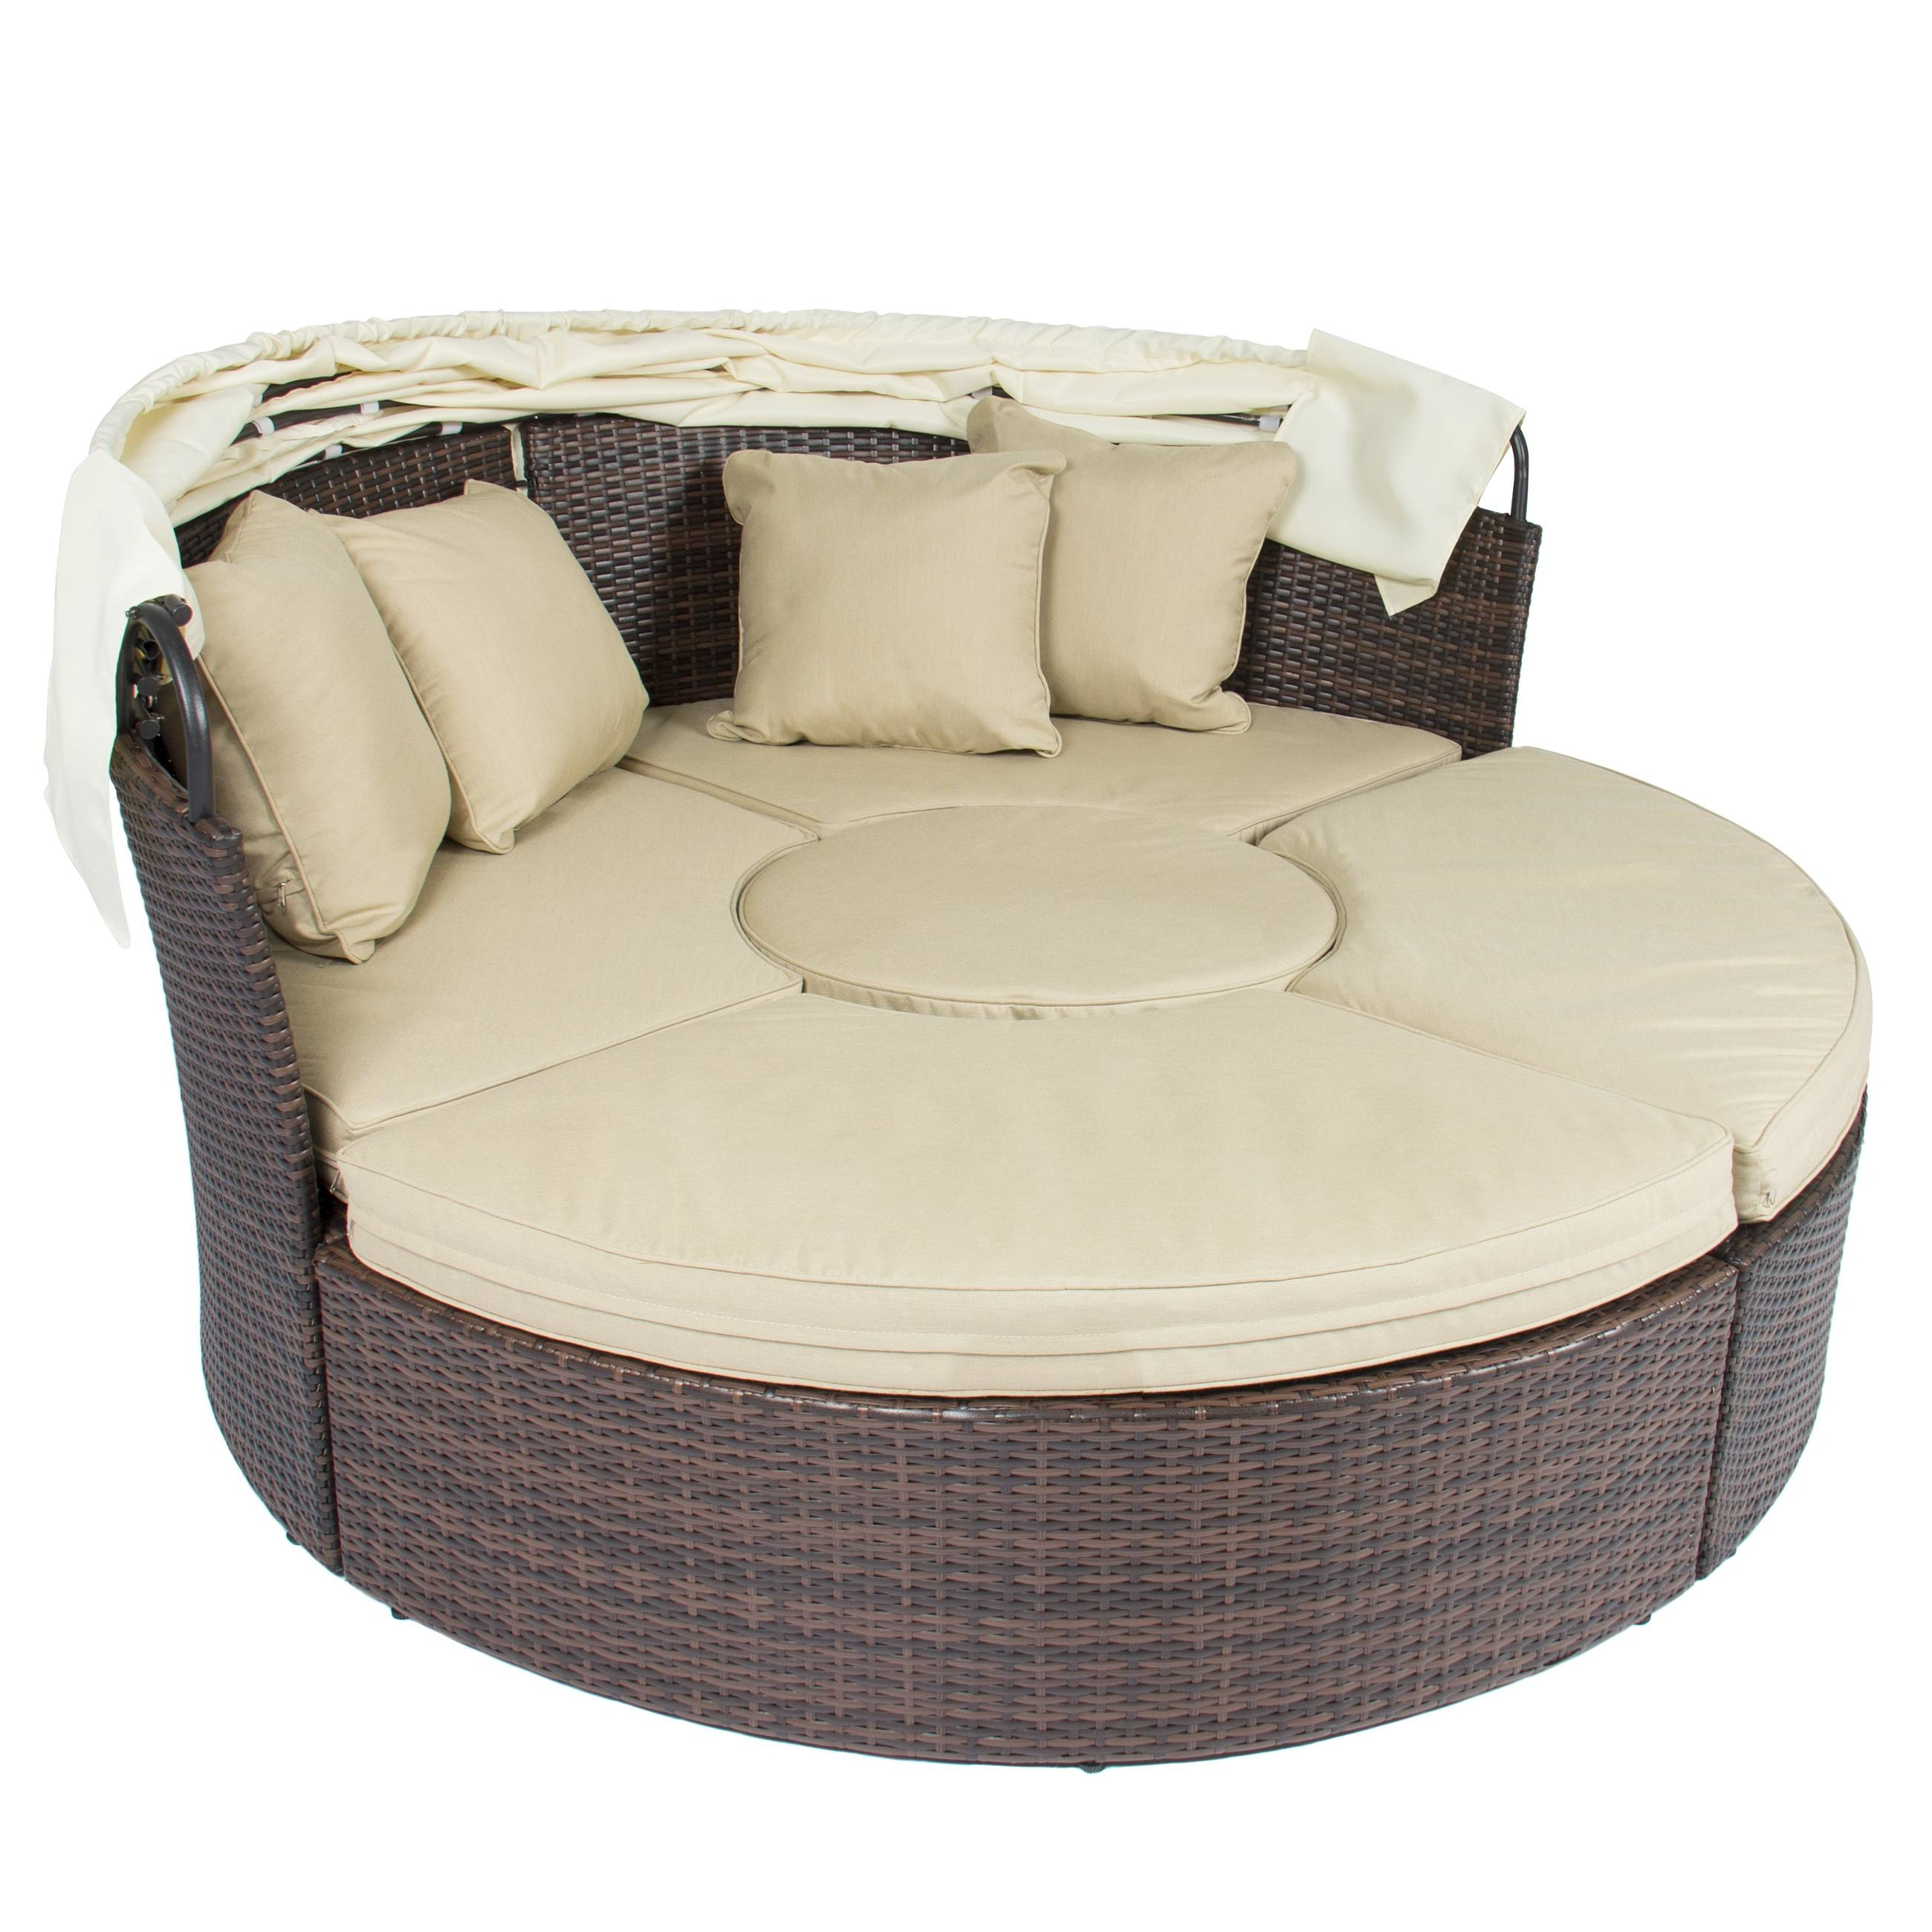 Outdoor Patio Sofa Furniture Round Retractable Canopy Daybed Brown pertaining to Round Sofas (Image 12 of 30)